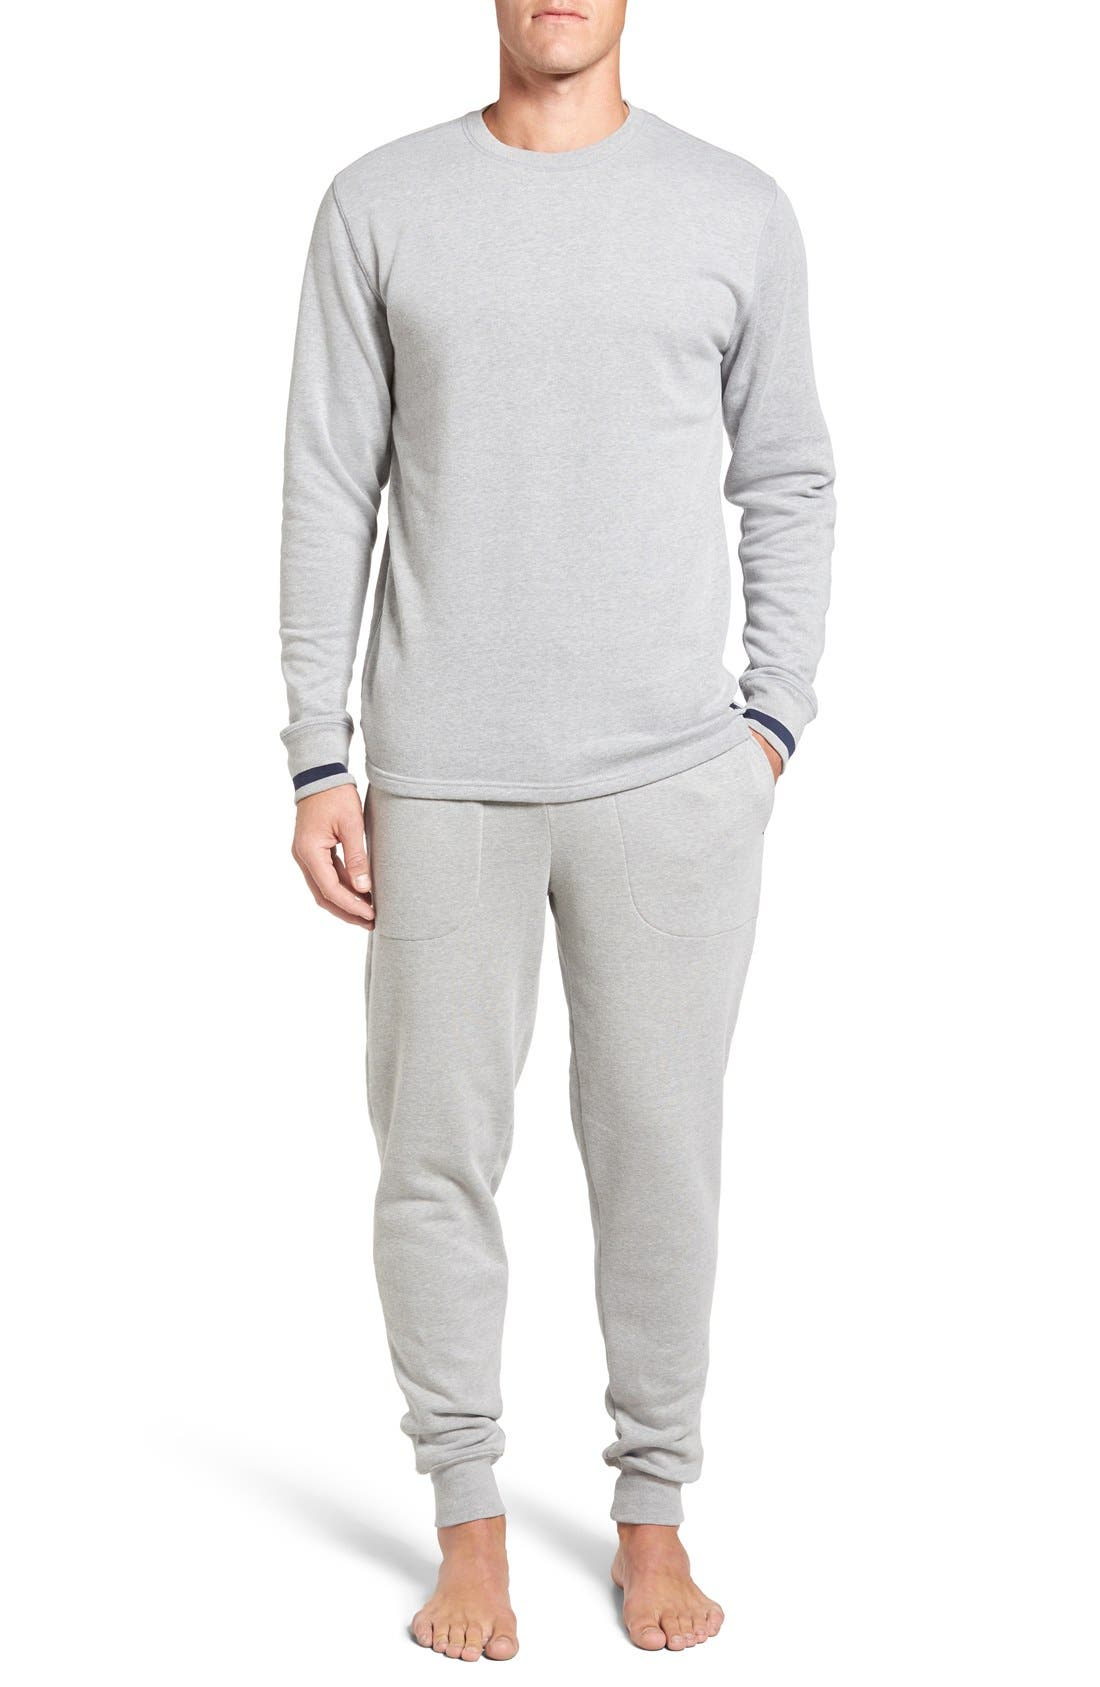 Brushed Jersey Cotton Blend Jogger Pants,                             Alternate thumbnail 9, color,                             ANDOVER HEATHER GREY